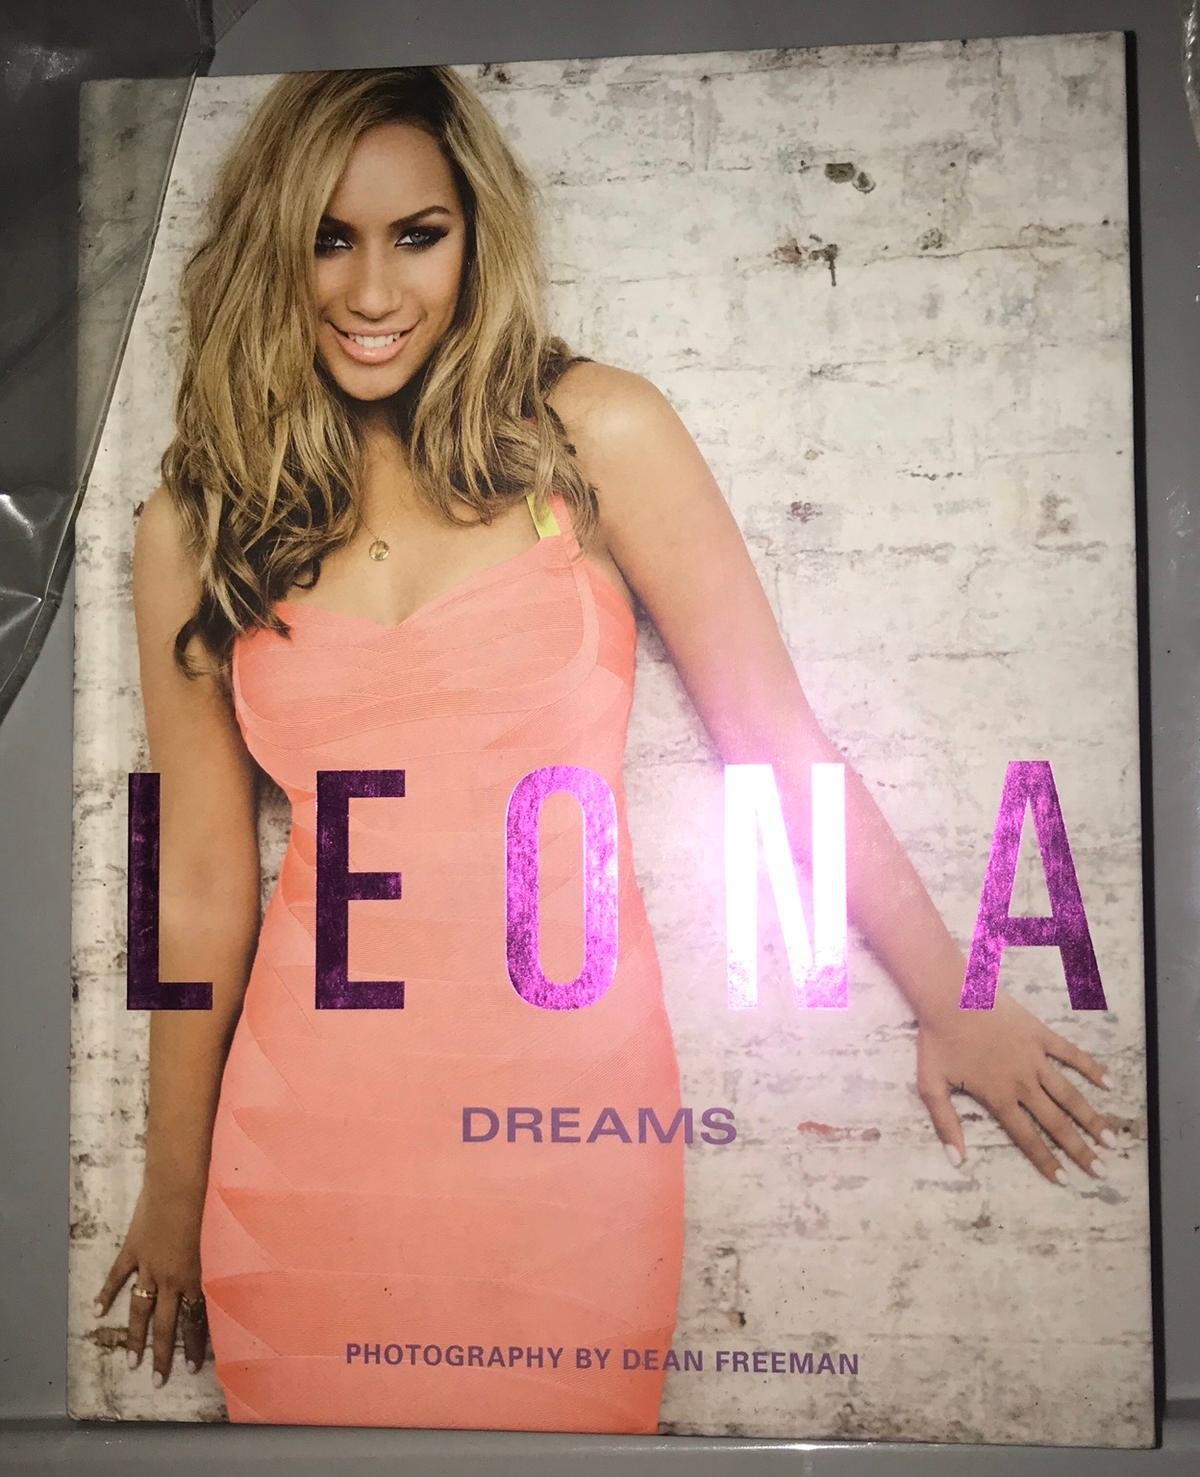 This book is new and unread  Review This pictorial autobiography gives Leona fans a peek into the life of The X Factor's biggest success story and show that, while she might be a proper international pop diva, she's still the sweet, down-to-earth girl we all fell in love with... Laden with beautiful, glossy pictures ( HEAT)  The first-class photography helps deliver a delightfully intimate insight to Leona's life off stage ( Sunday Express)